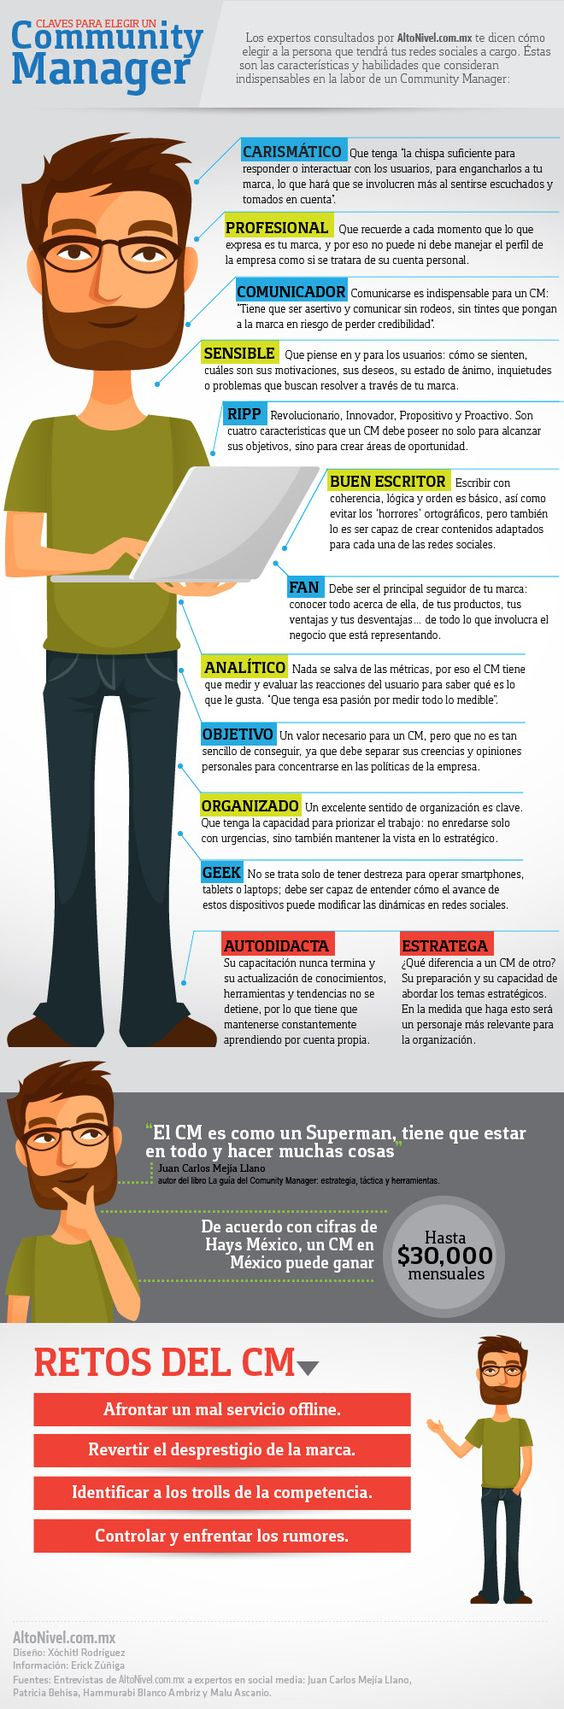 ser buen Community Manager - claves para elegir community manager